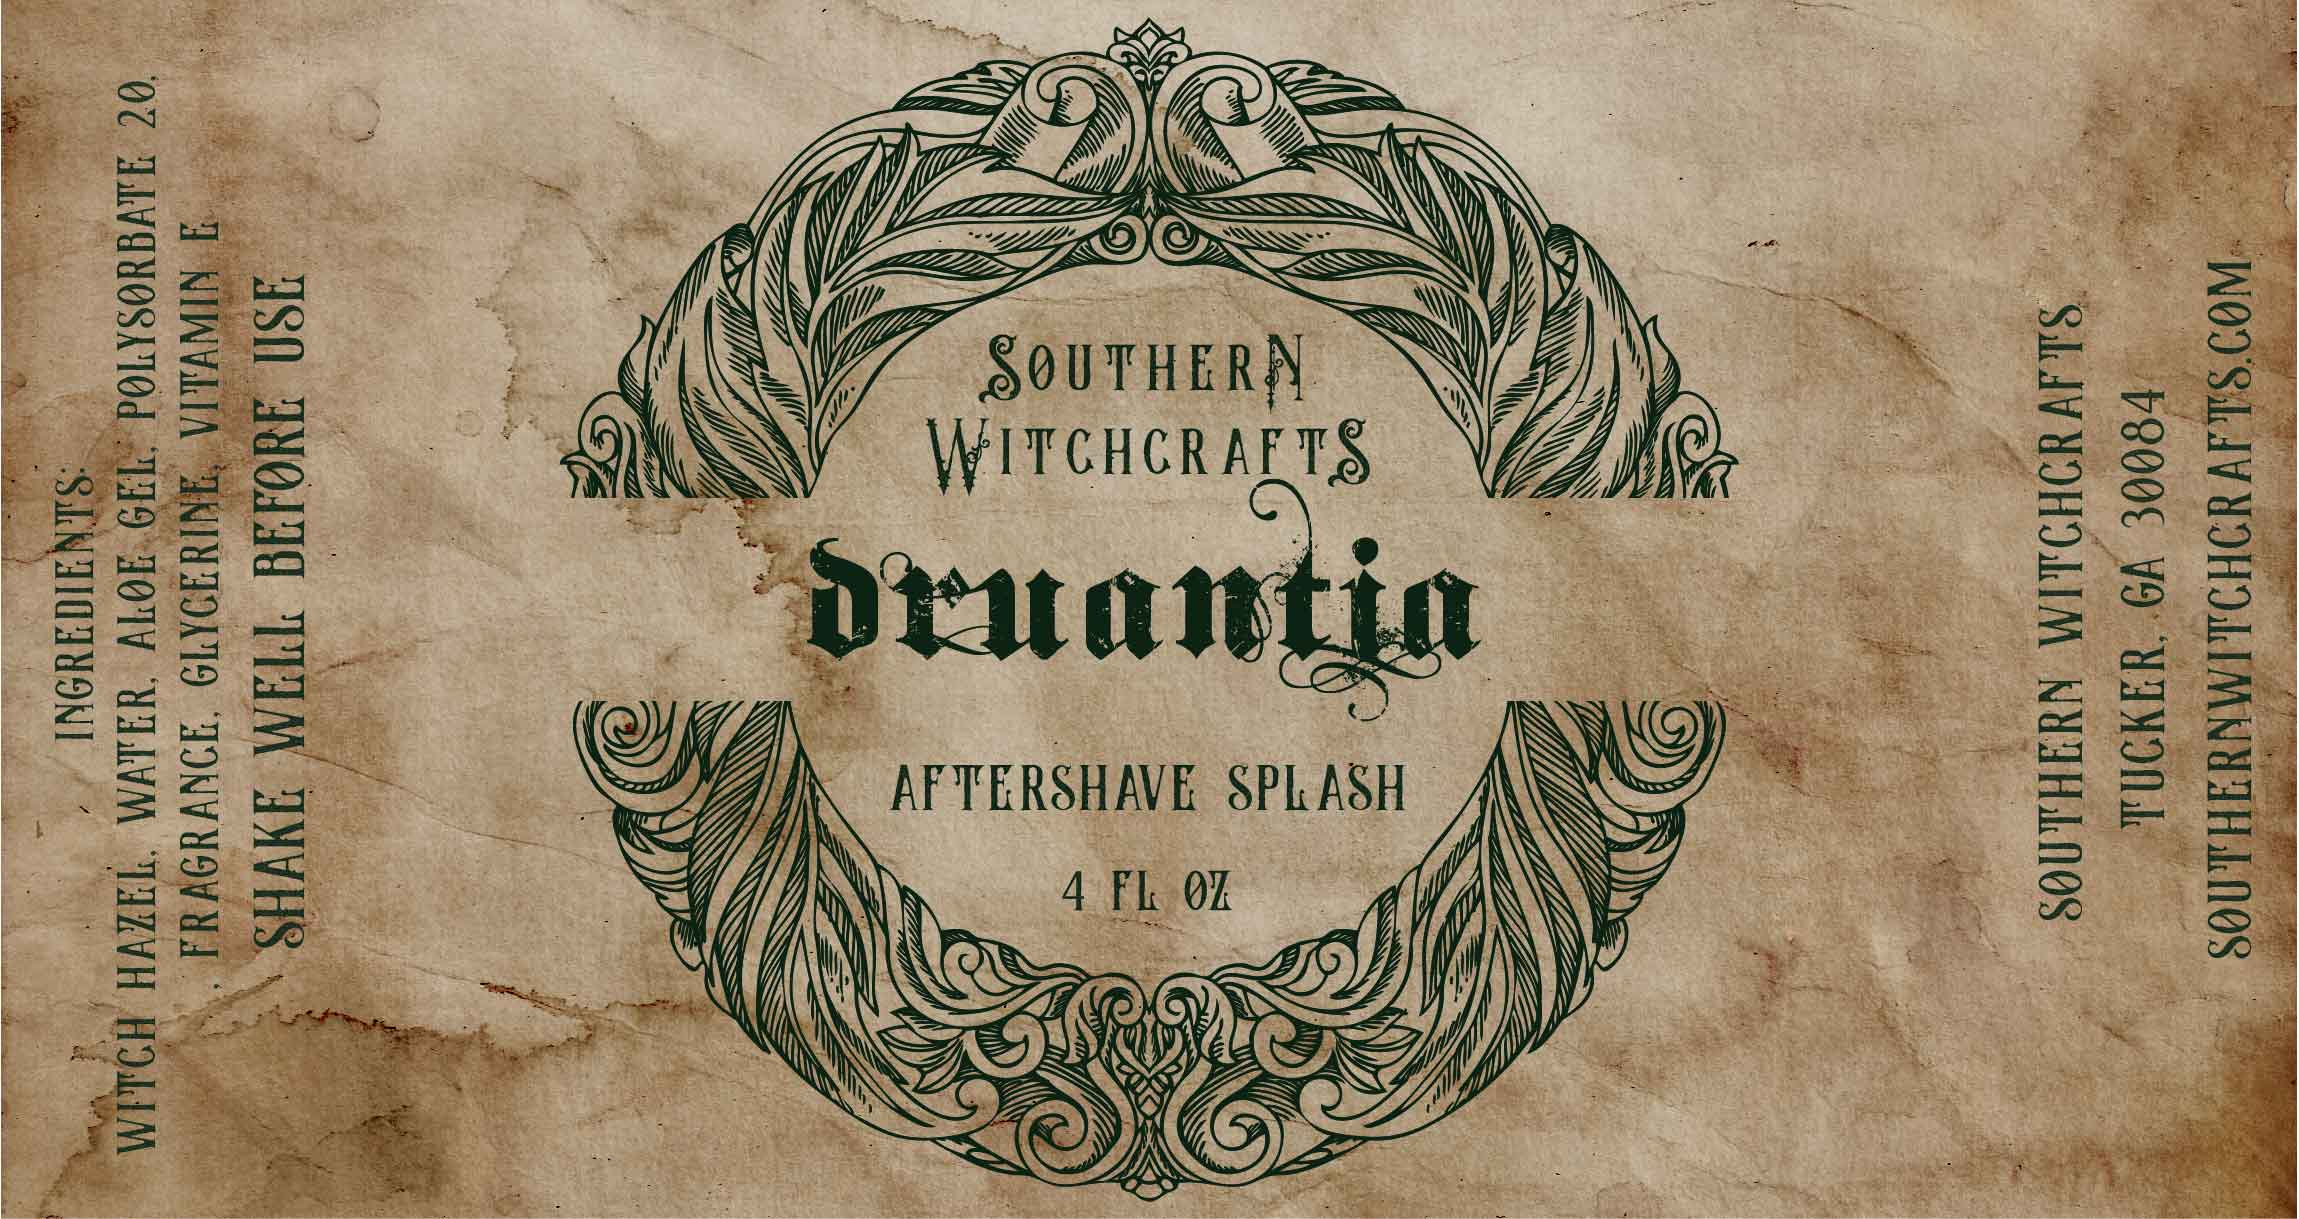 Southern Witchcrafts - Druantia - Aftershave (Alcohol Free) image